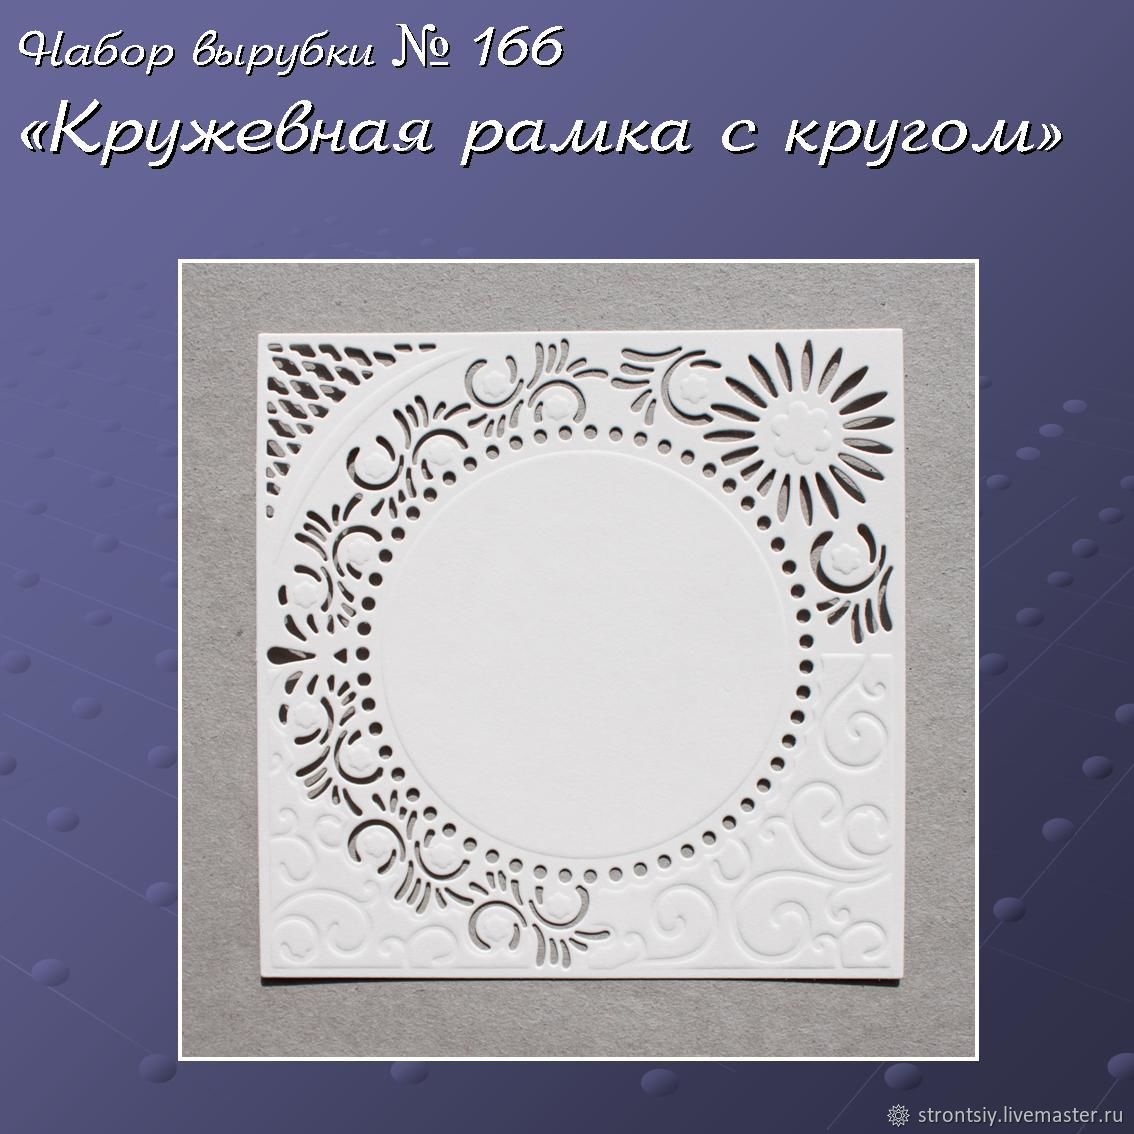 Set logging No. 172 `Lace frame with circle` etched kit 1 item